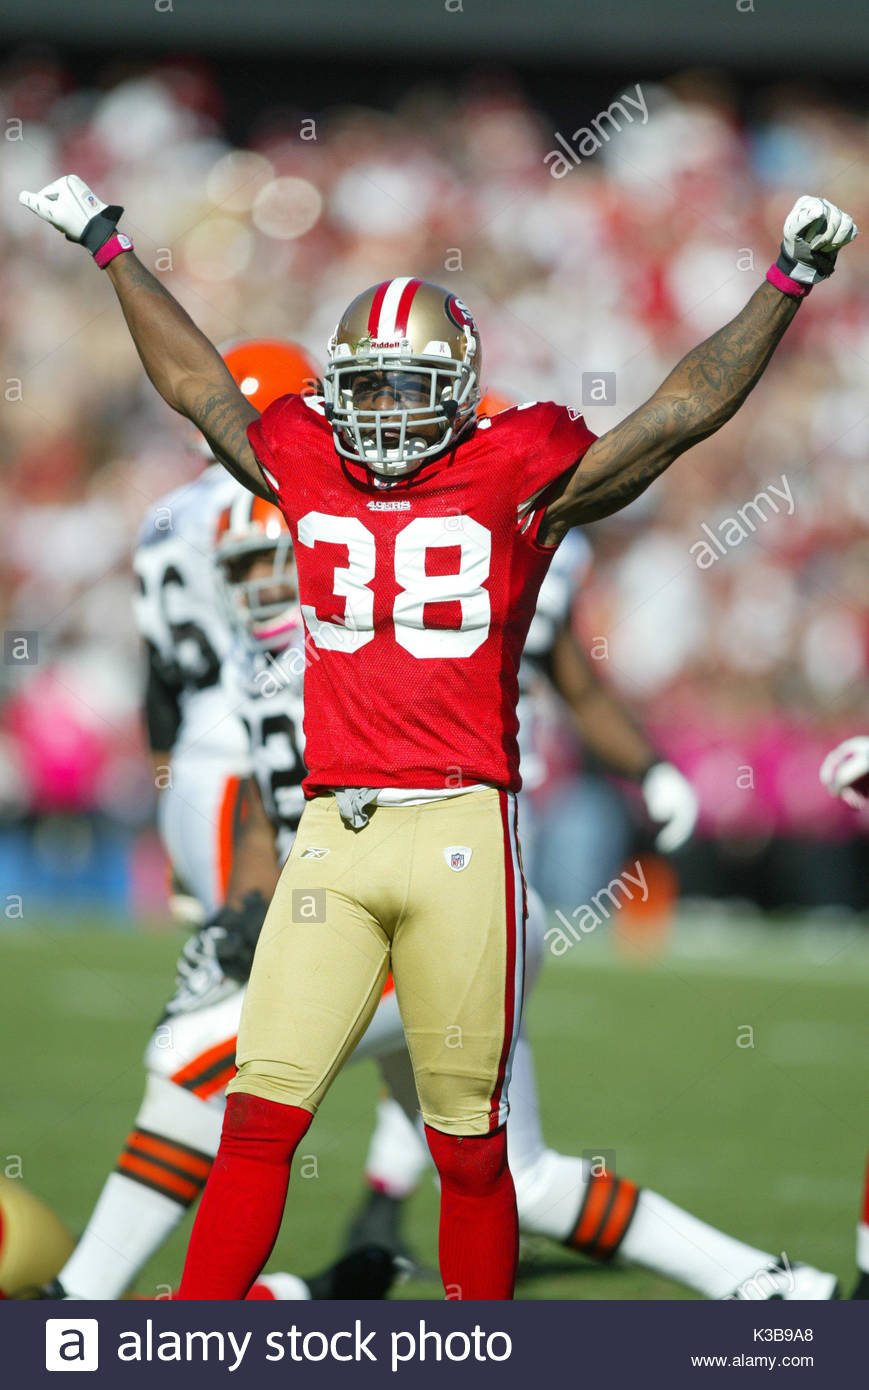 f0f8cc639ffa9 ... Goldson Jersey Dashon Goldson. The San Francisco 49ers defeated the  Cleveland Browns by the final score of Nike ...